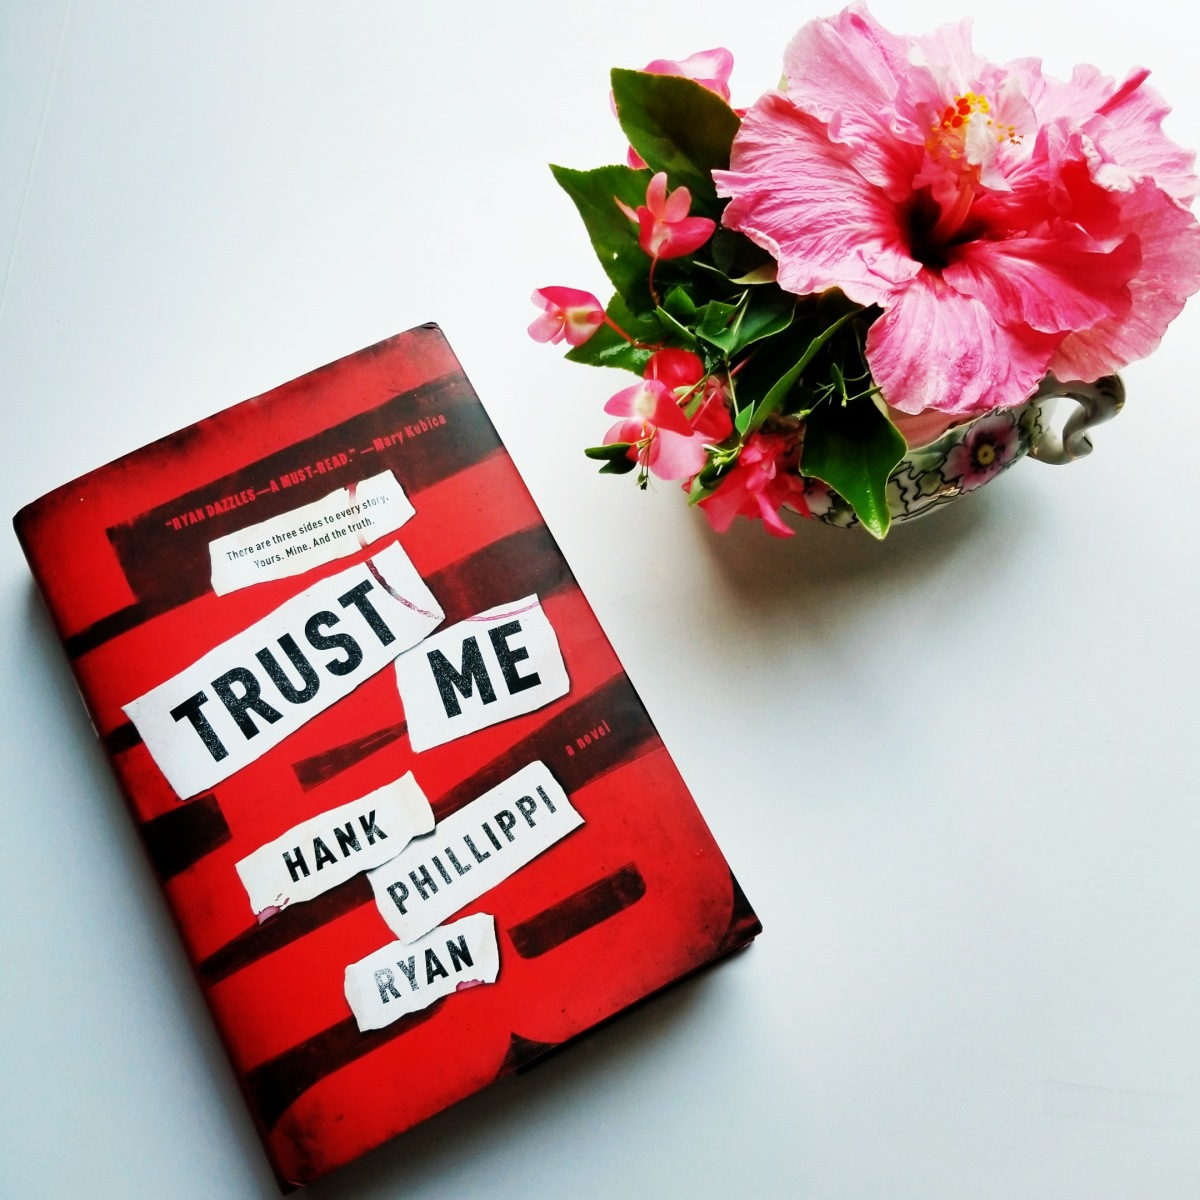 Trust Me by Hank Phillippi Ryan #bookreview #tarheelreader #thrtrustme @hankpryan @torbooks #forgebooks #trustmebook #trustmereadit #bookbestiestrustme